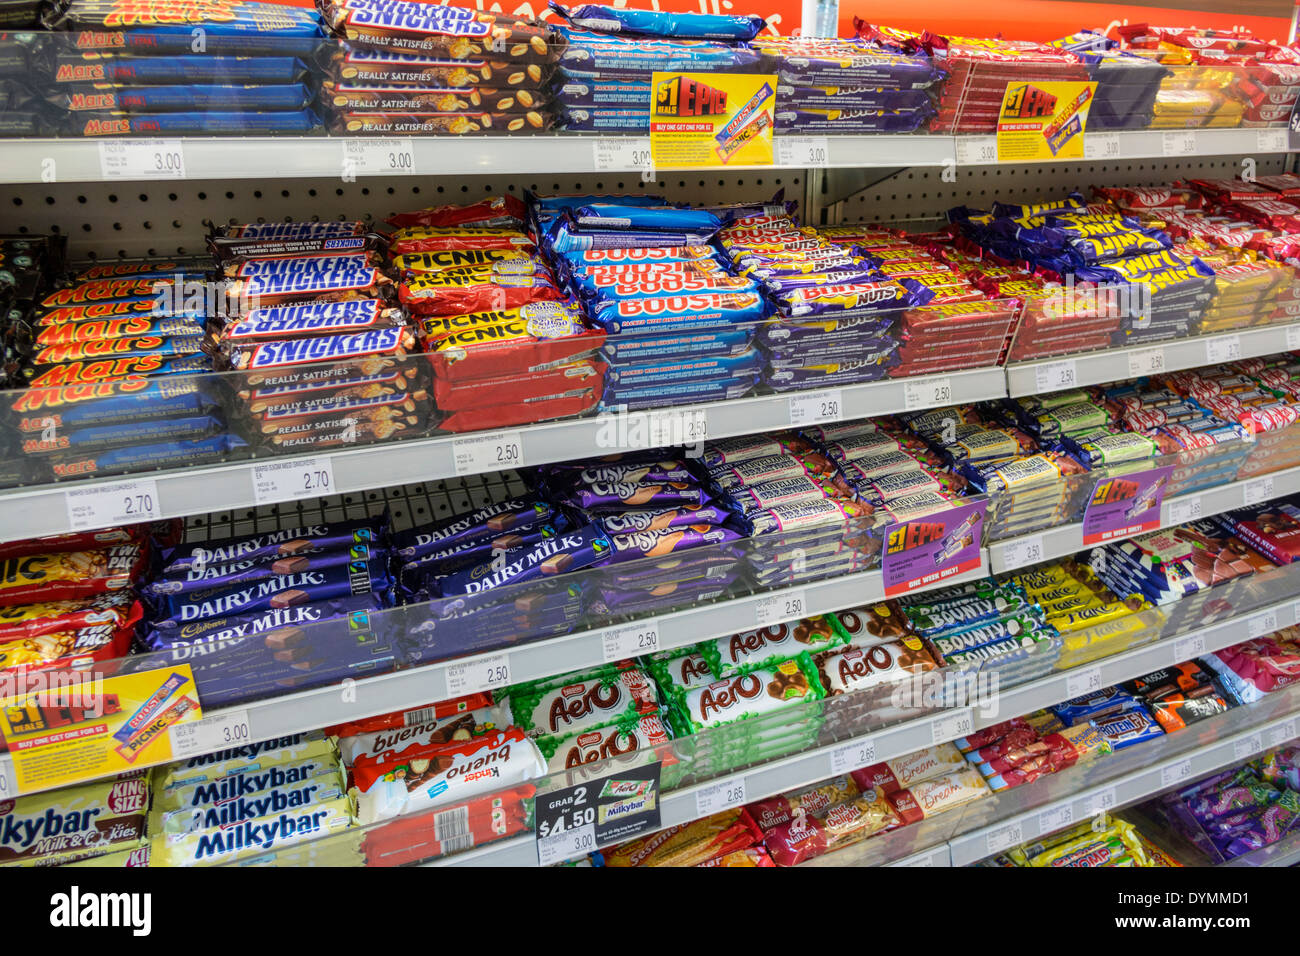 Australia candy shop online